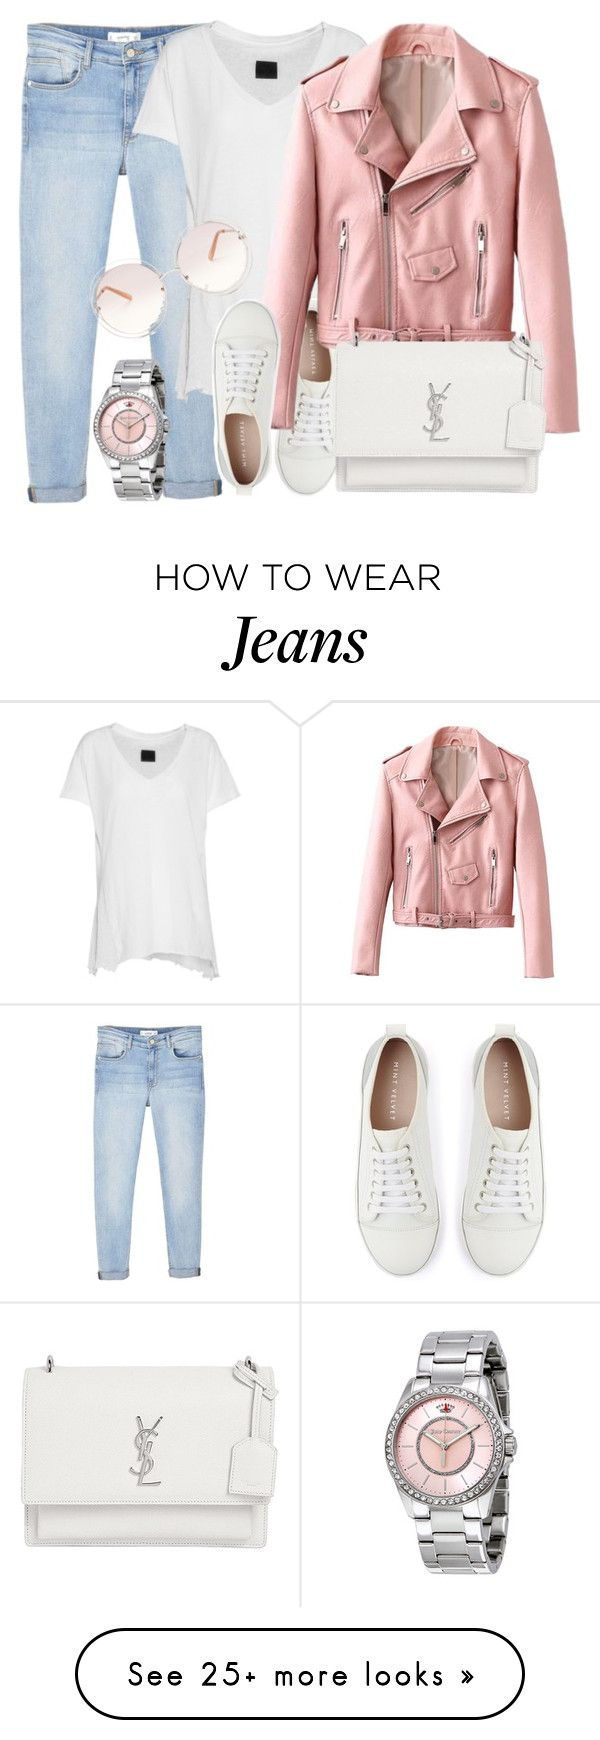 """Pinks & Whites"" by monmondefou on Polyvore featuring MANGO, RtA, Mint Velvet, Yves Saint Laurent, Juicy Couture, Chloé, white and Pink"